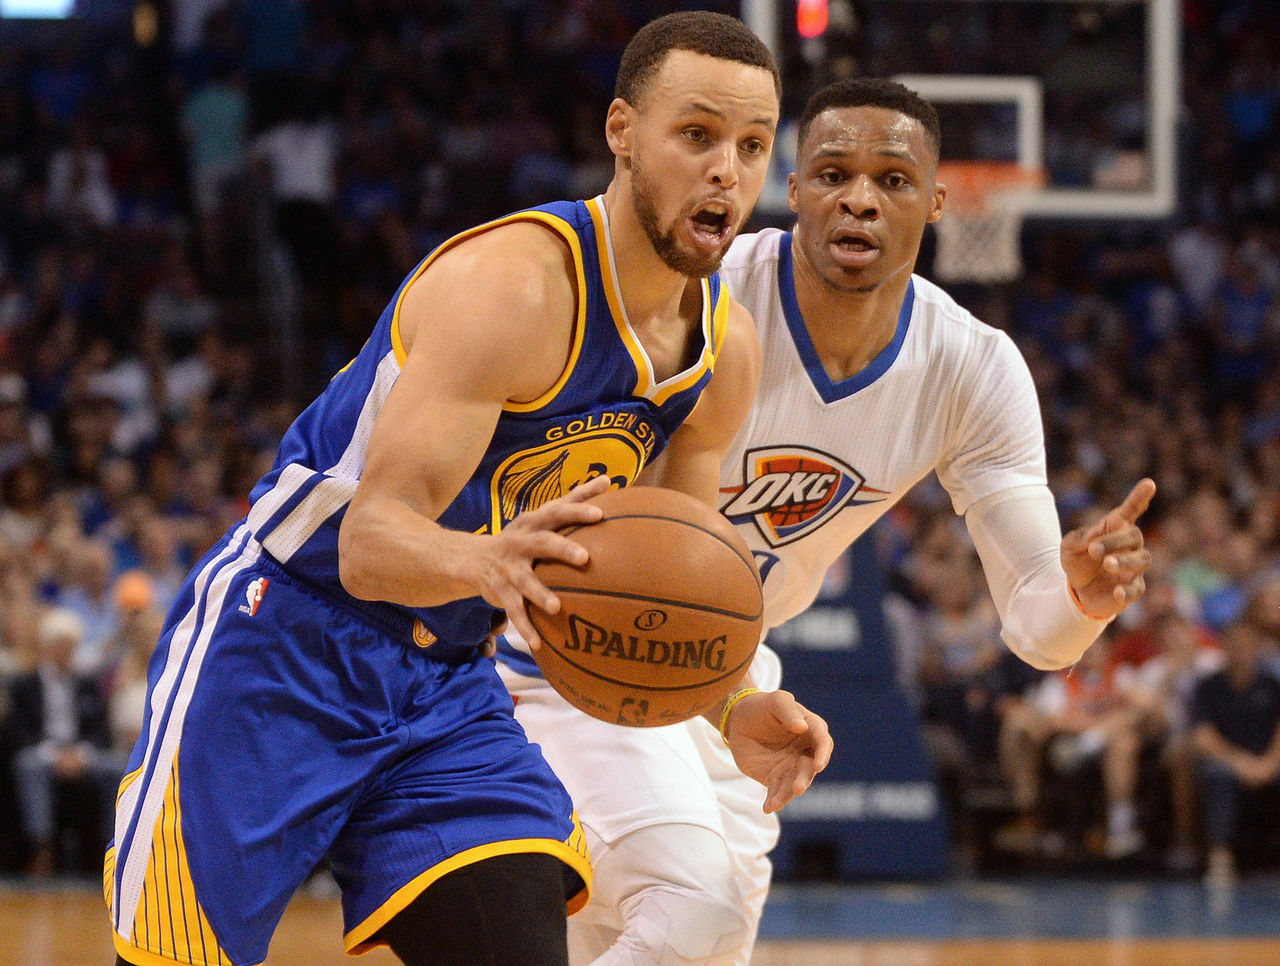 Cropped 2017 03 21t014230z 1631995939 nocid rtrmadp 3 nba golden state warriors at oklahoma city thunder